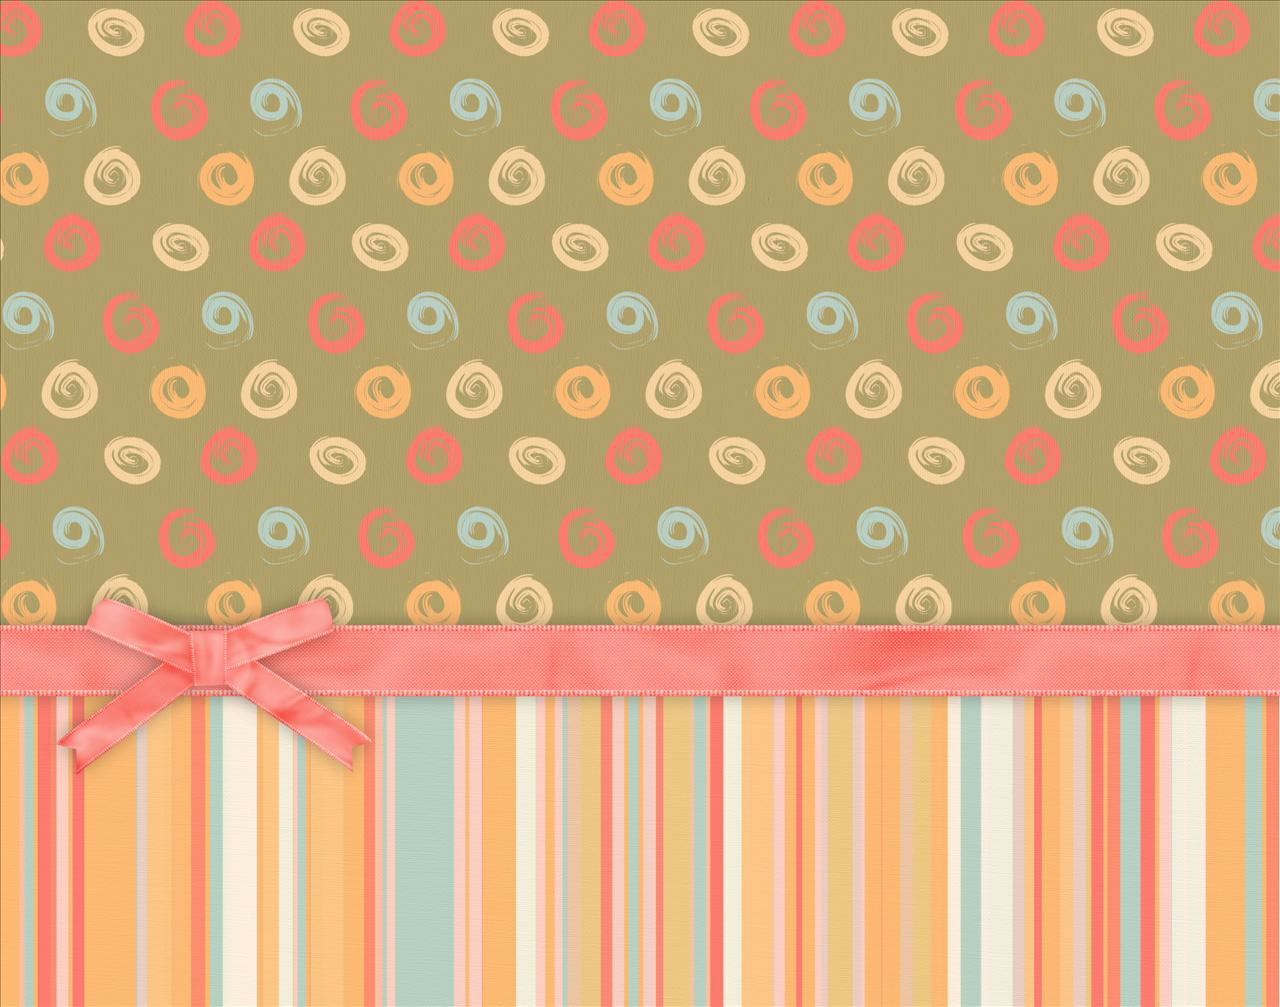 Stripes and Dots Backgrounds